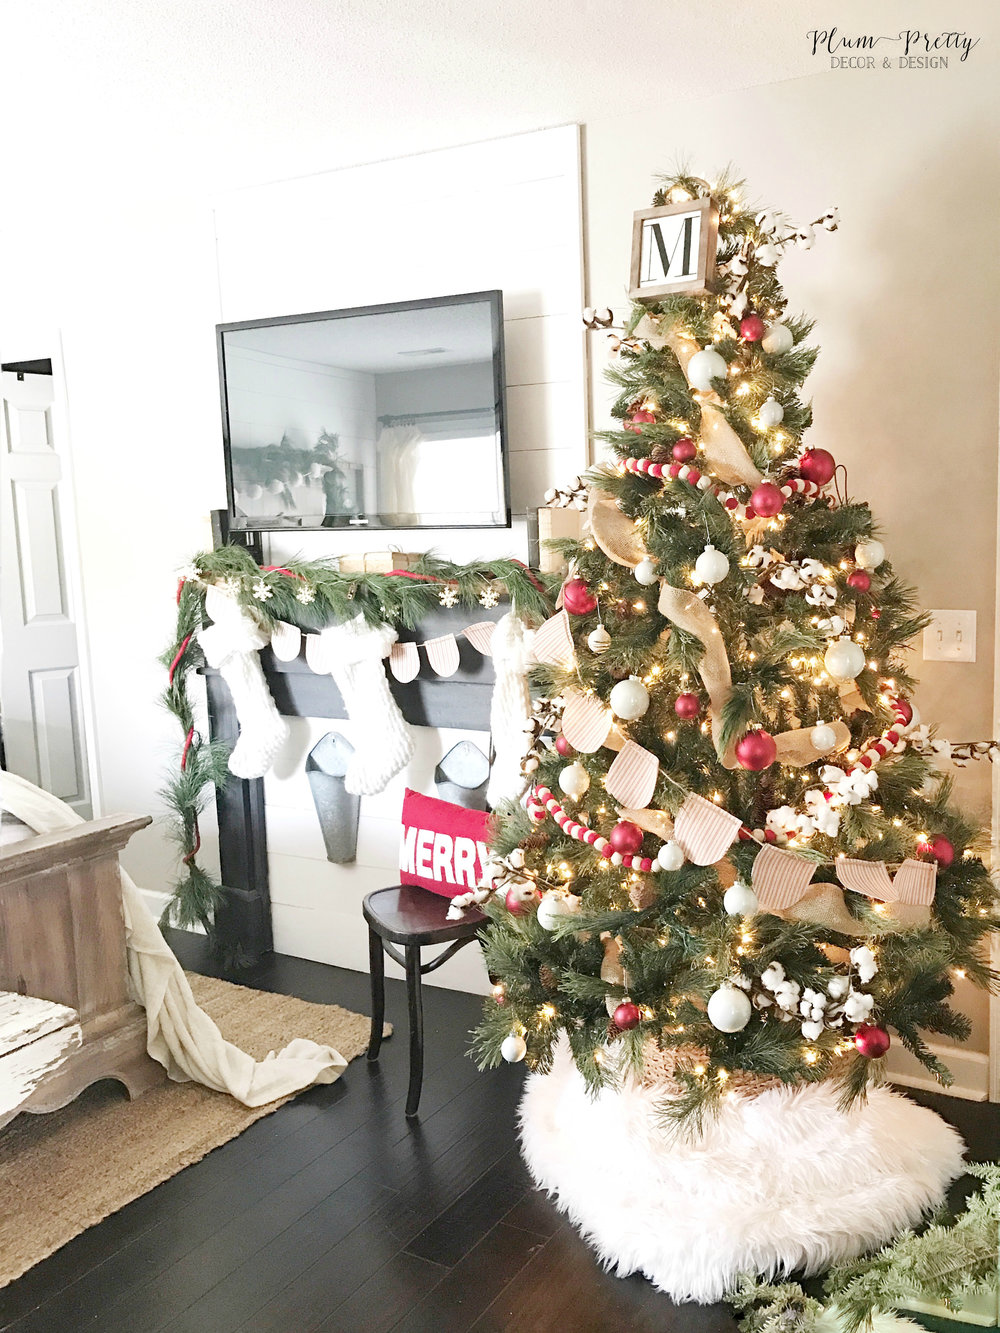 Farmhouse Christmas Bedroom Tour  Red And White Christmas Tree  By Kayla  Miller Of Plum